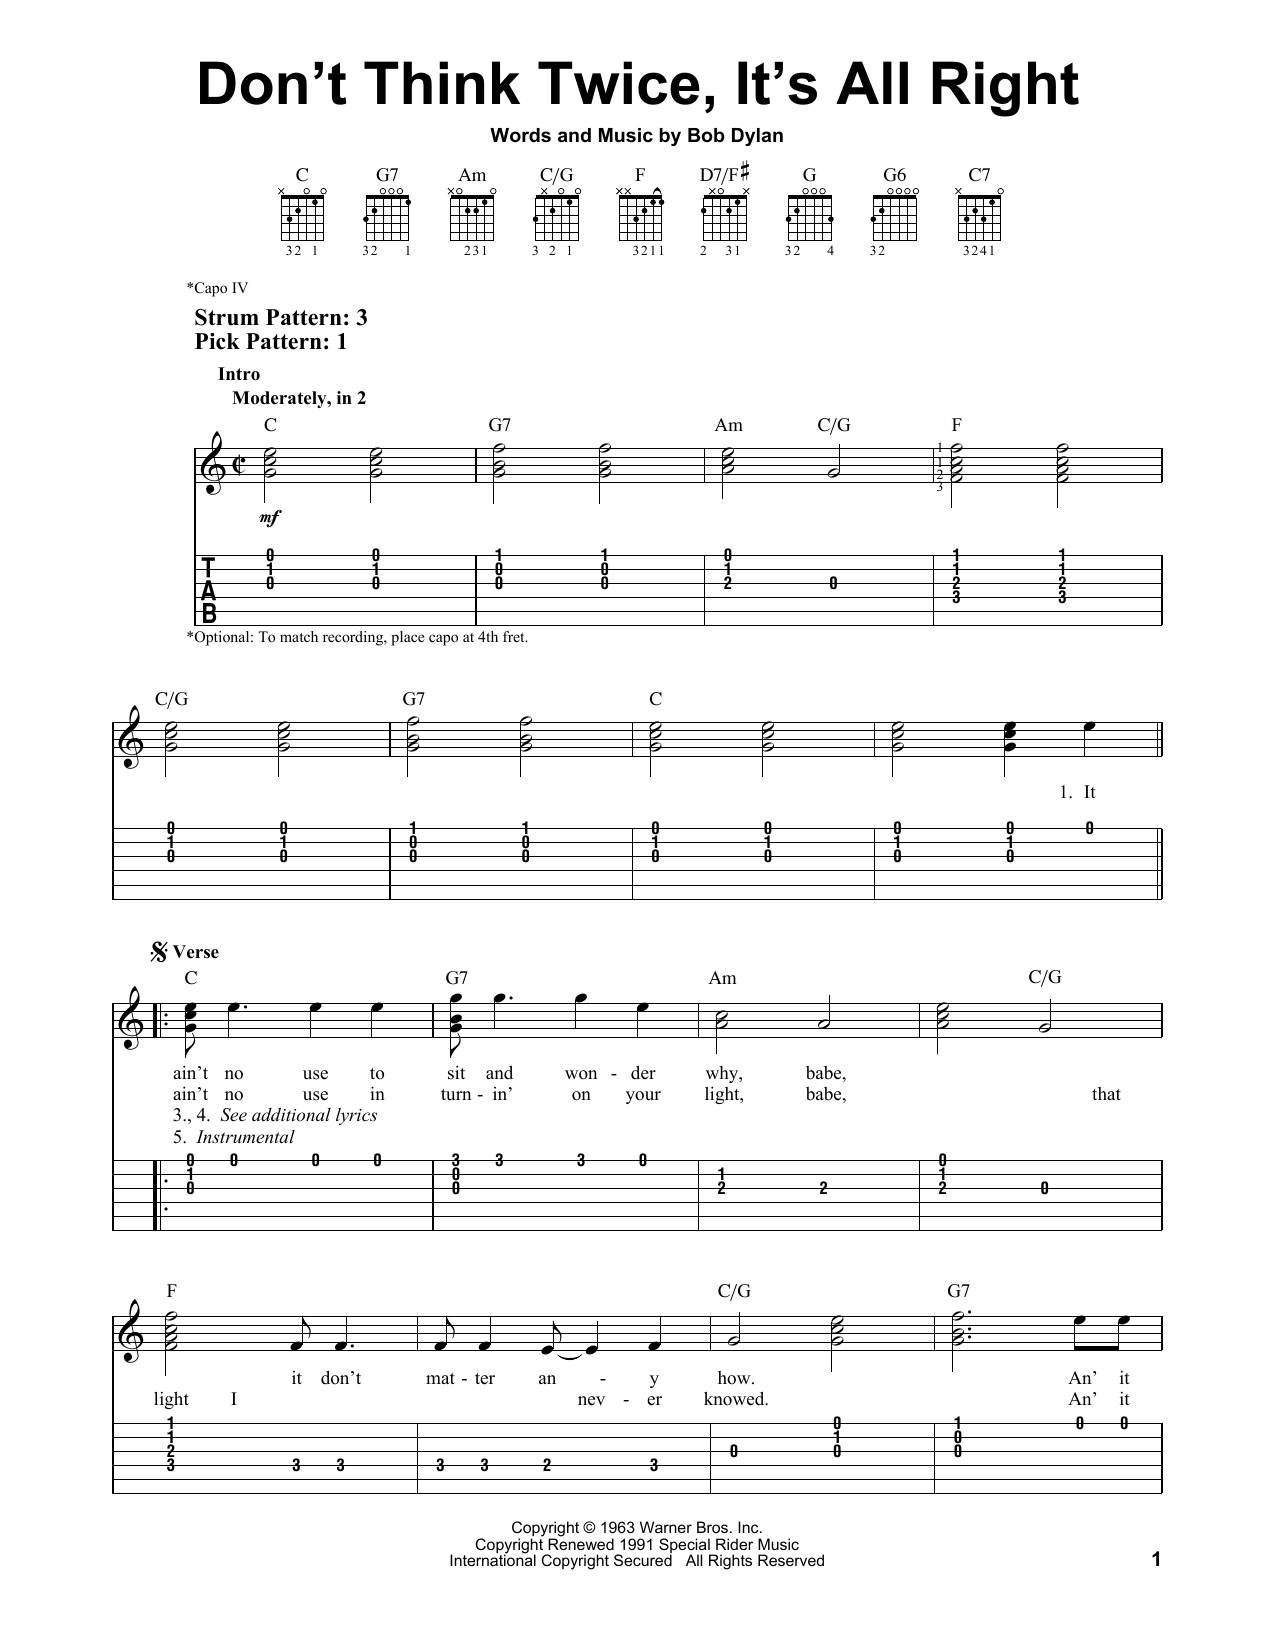 Don't Think Twice, It's All Right Sheet Music